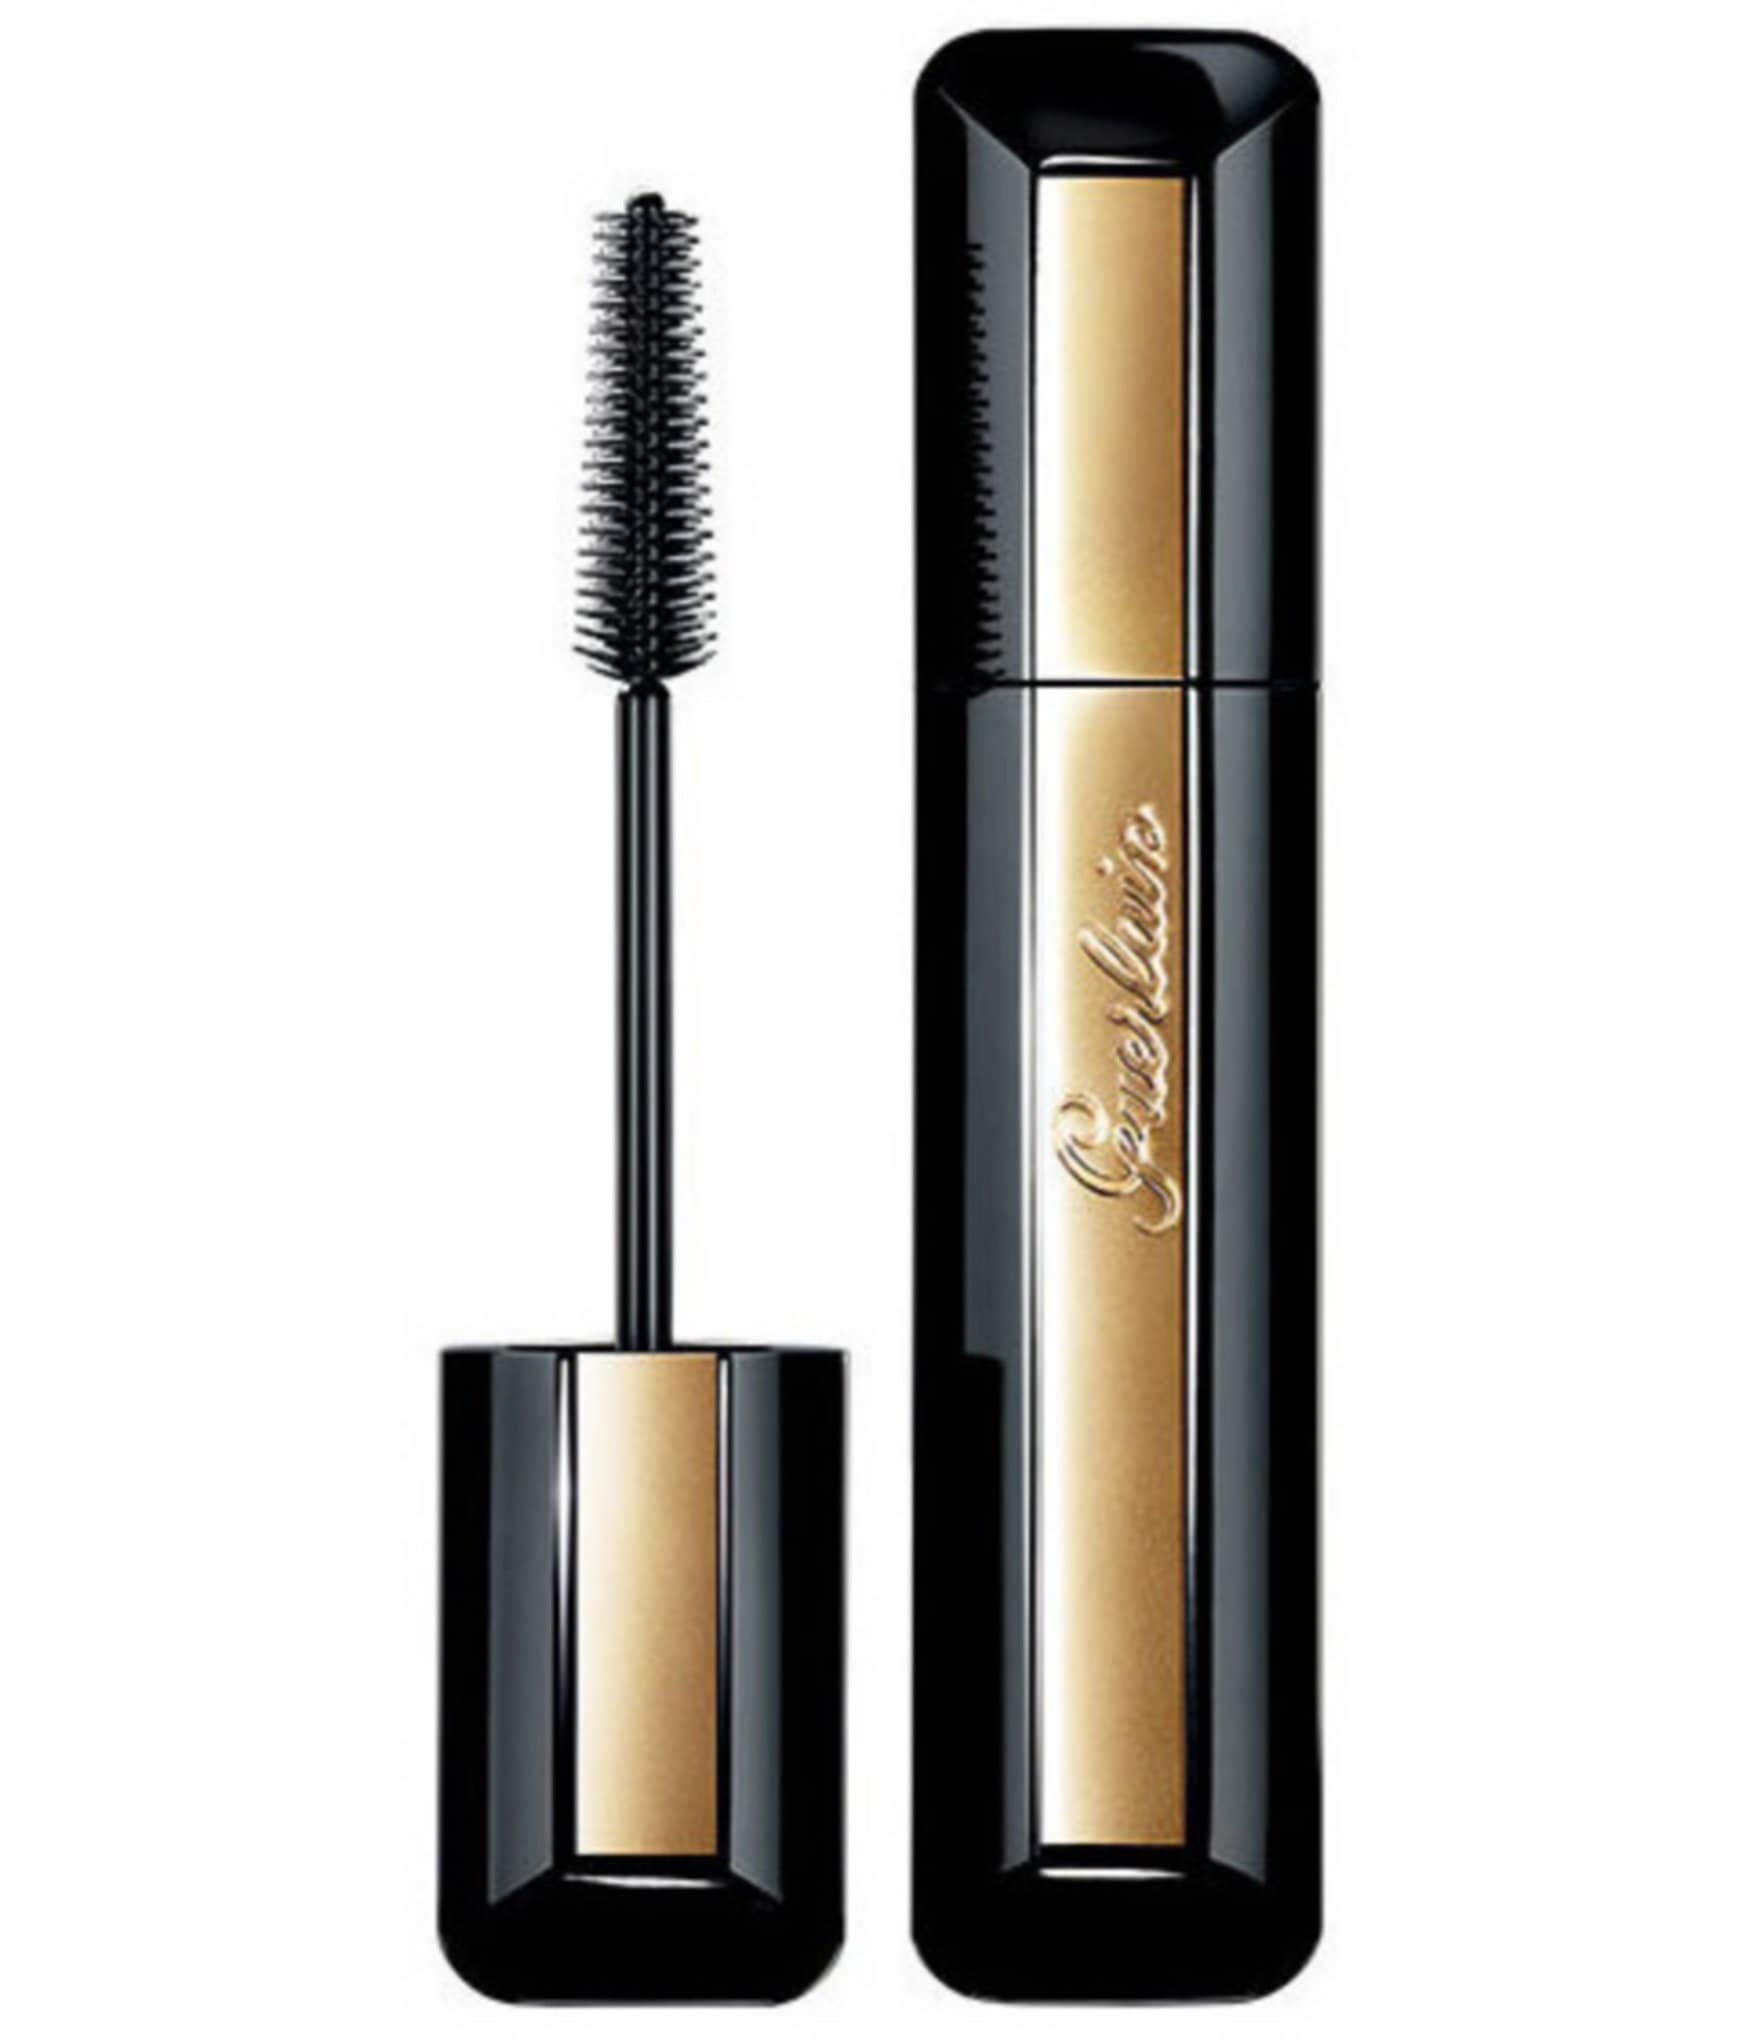 Guerlain Cils D Enfer Maxi Lash So Volume Mascara Dillard S